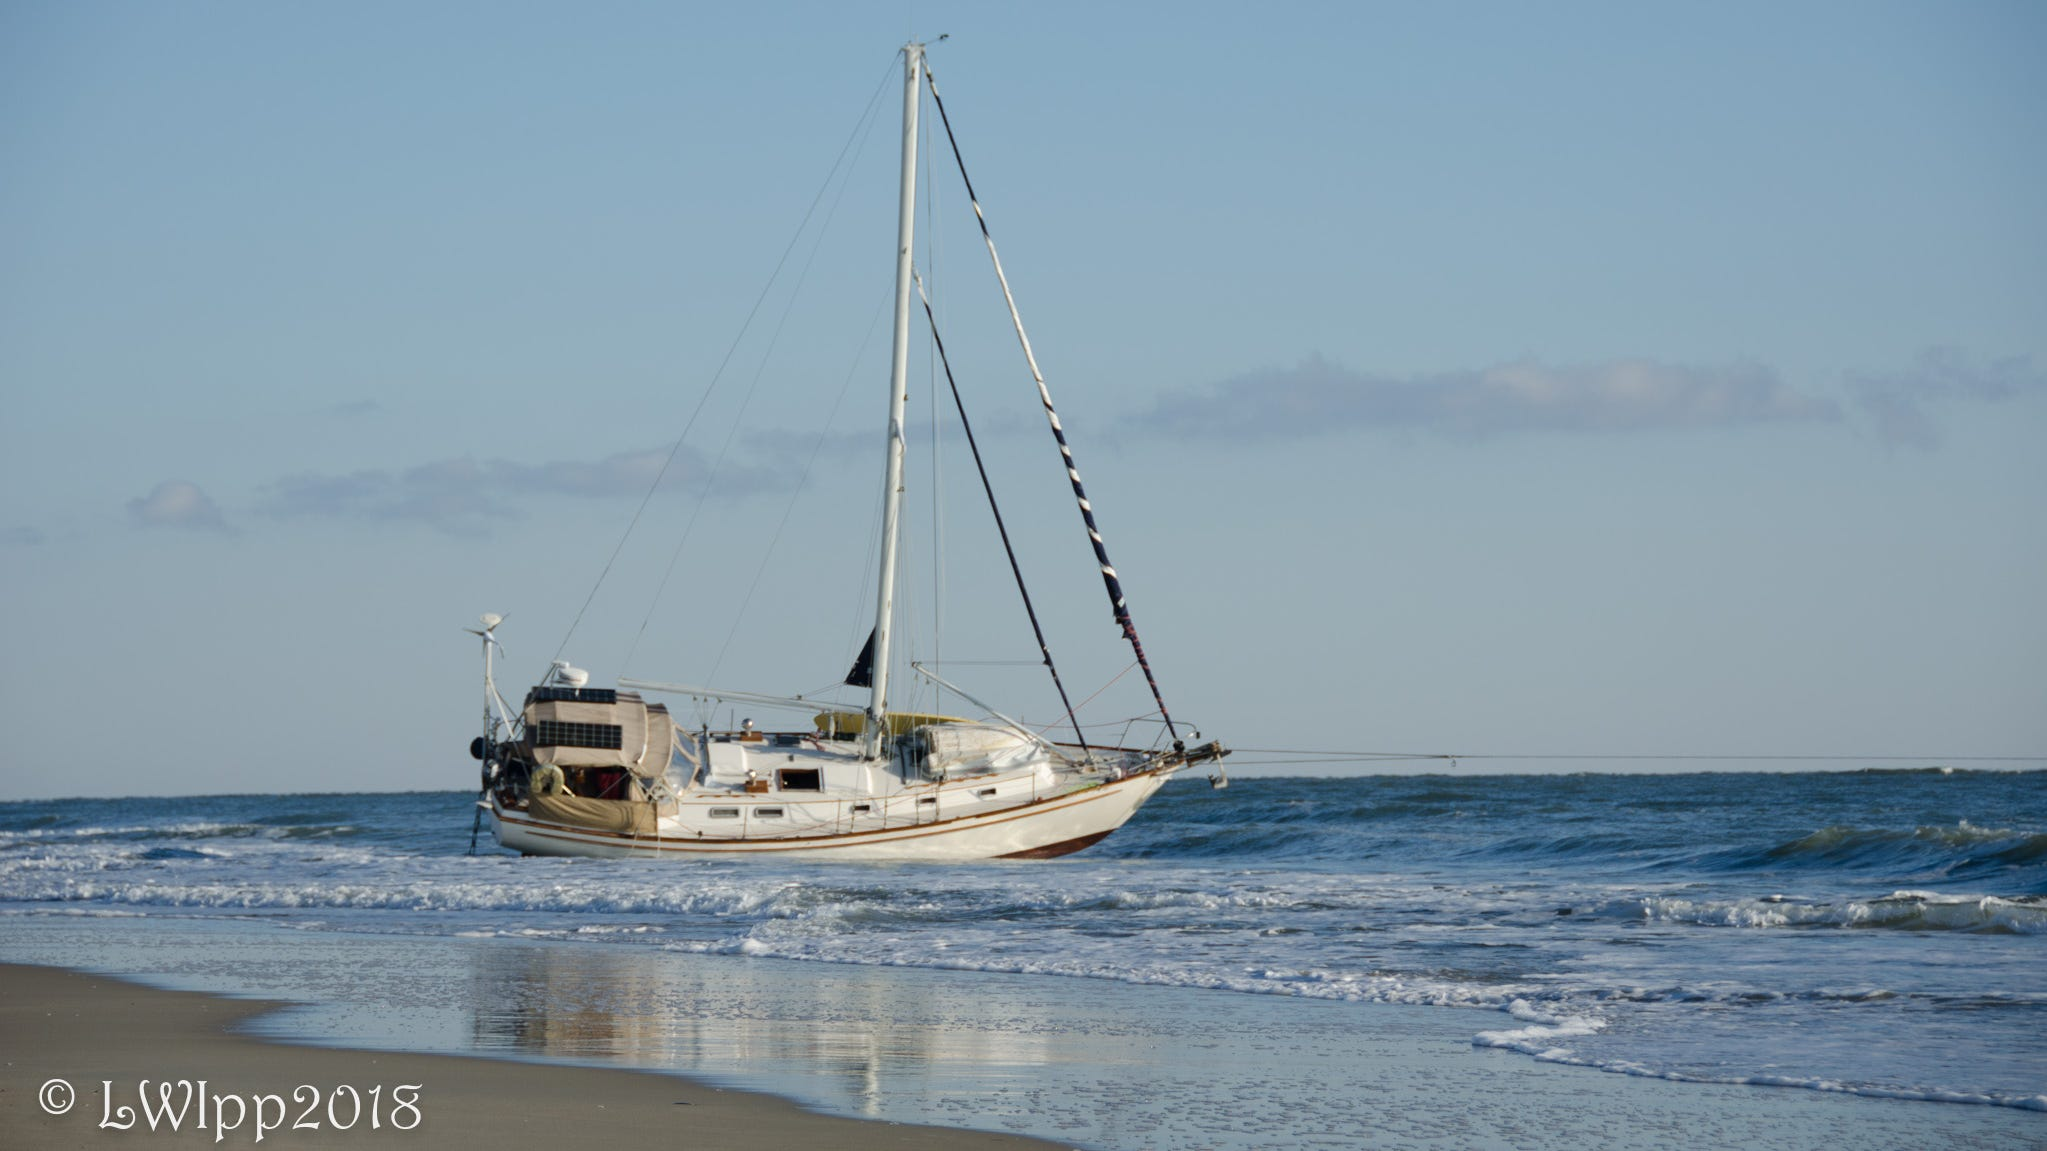 Ocean City: Coast Guard responds after sailboat runs aground